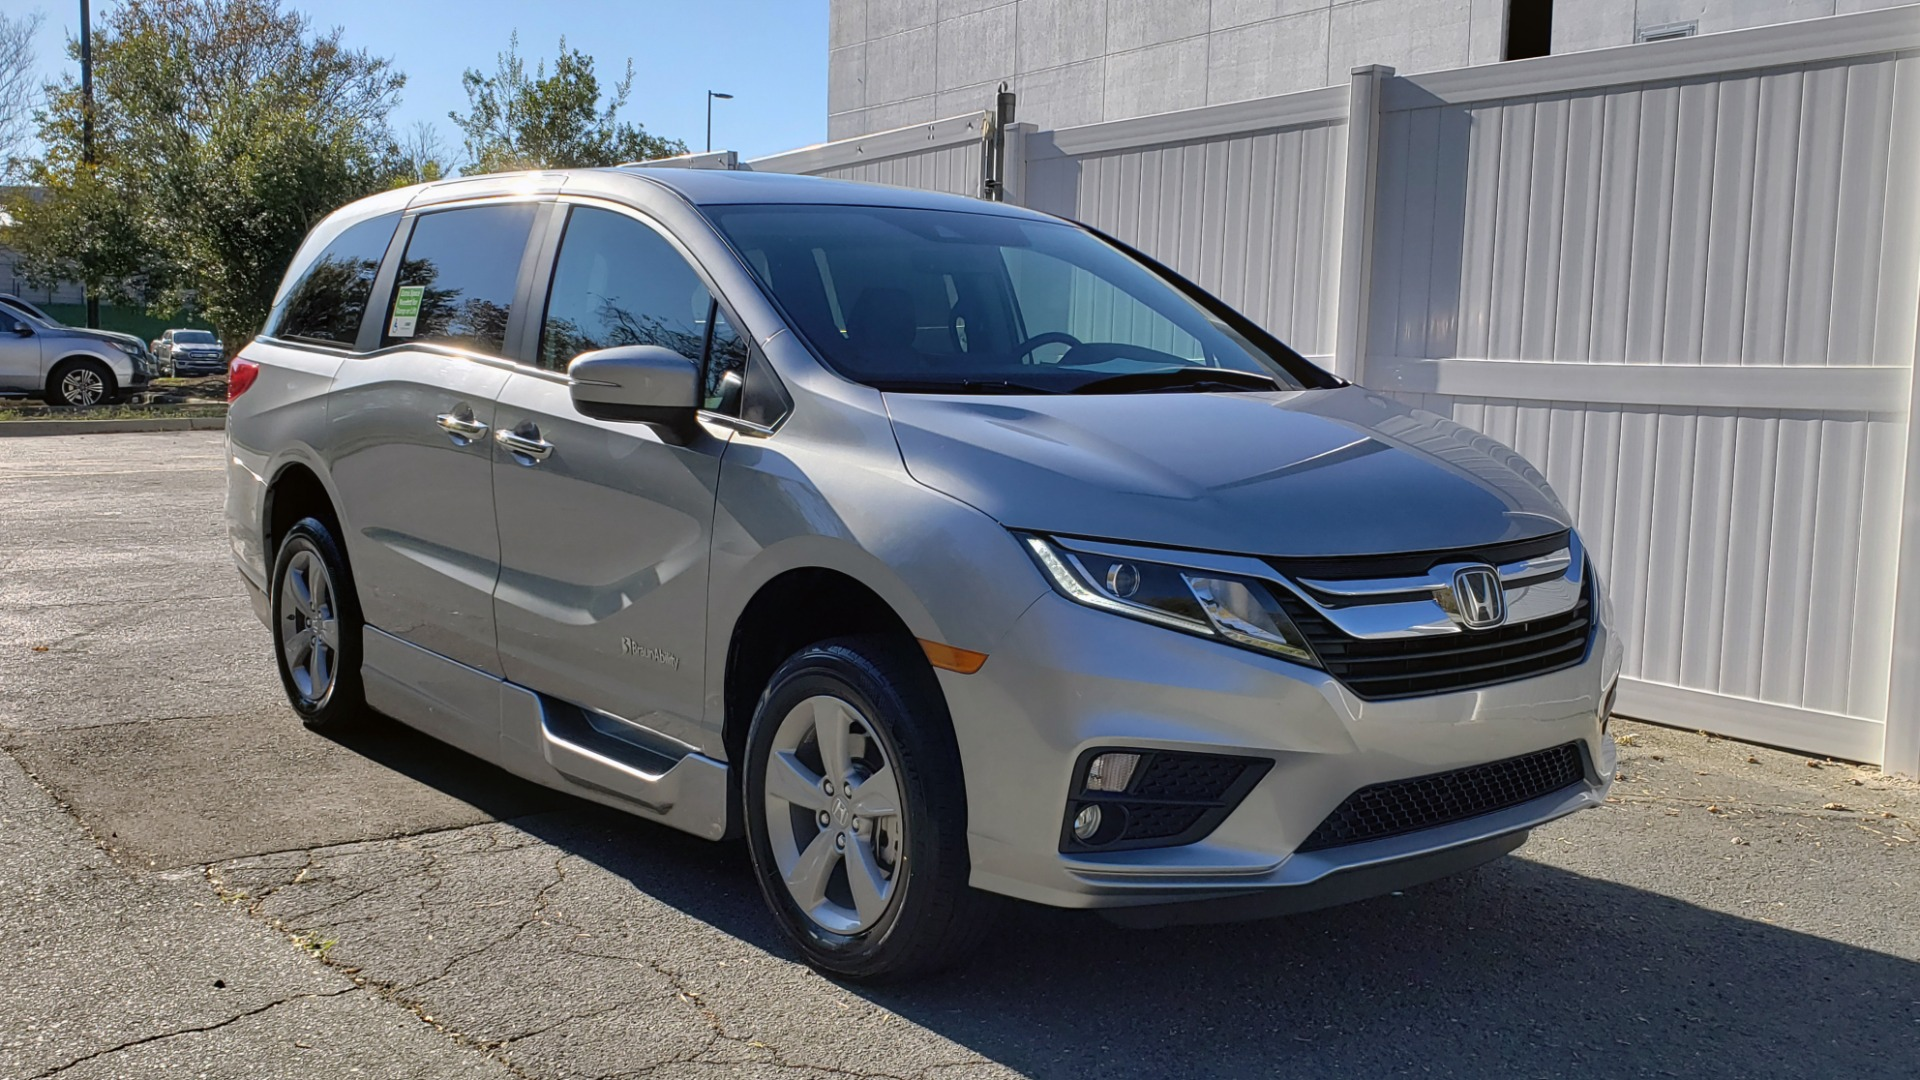 Used 2019 Honda ODYSSEY EX-L BRAUNABILITY / NAV / RES / LKA / BLUE-RAY / SUNROOF / REARVIEW for sale $49,999 at Formula Imports in Charlotte NC 28227 4